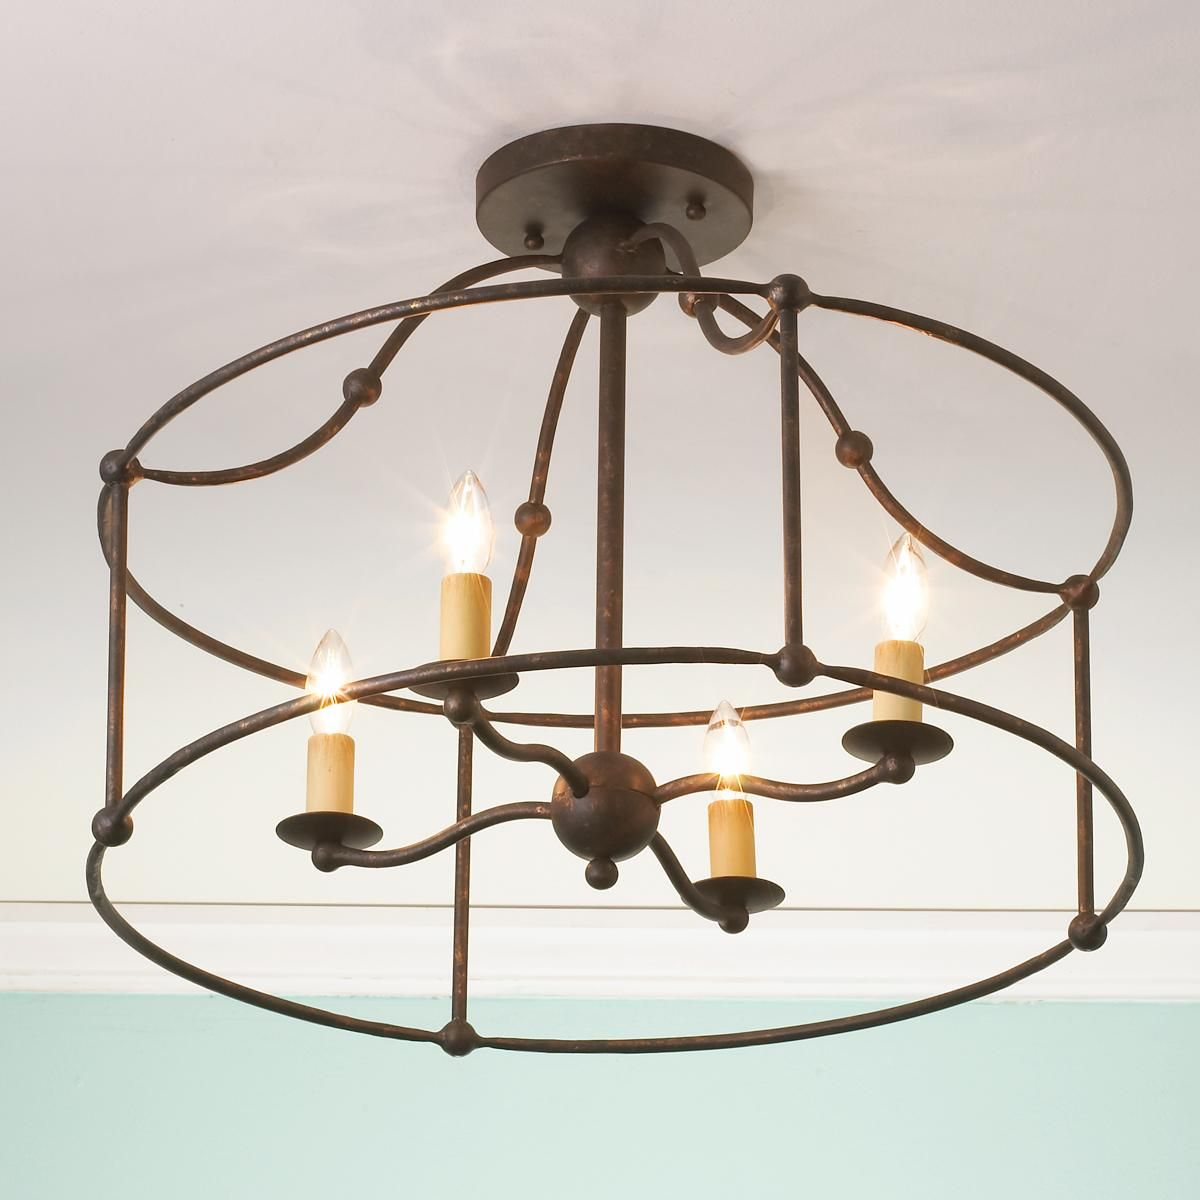 wrought iron frame ceiling lantern ceiling light wrought. Black Bedroom Furniture Sets. Home Design Ideas